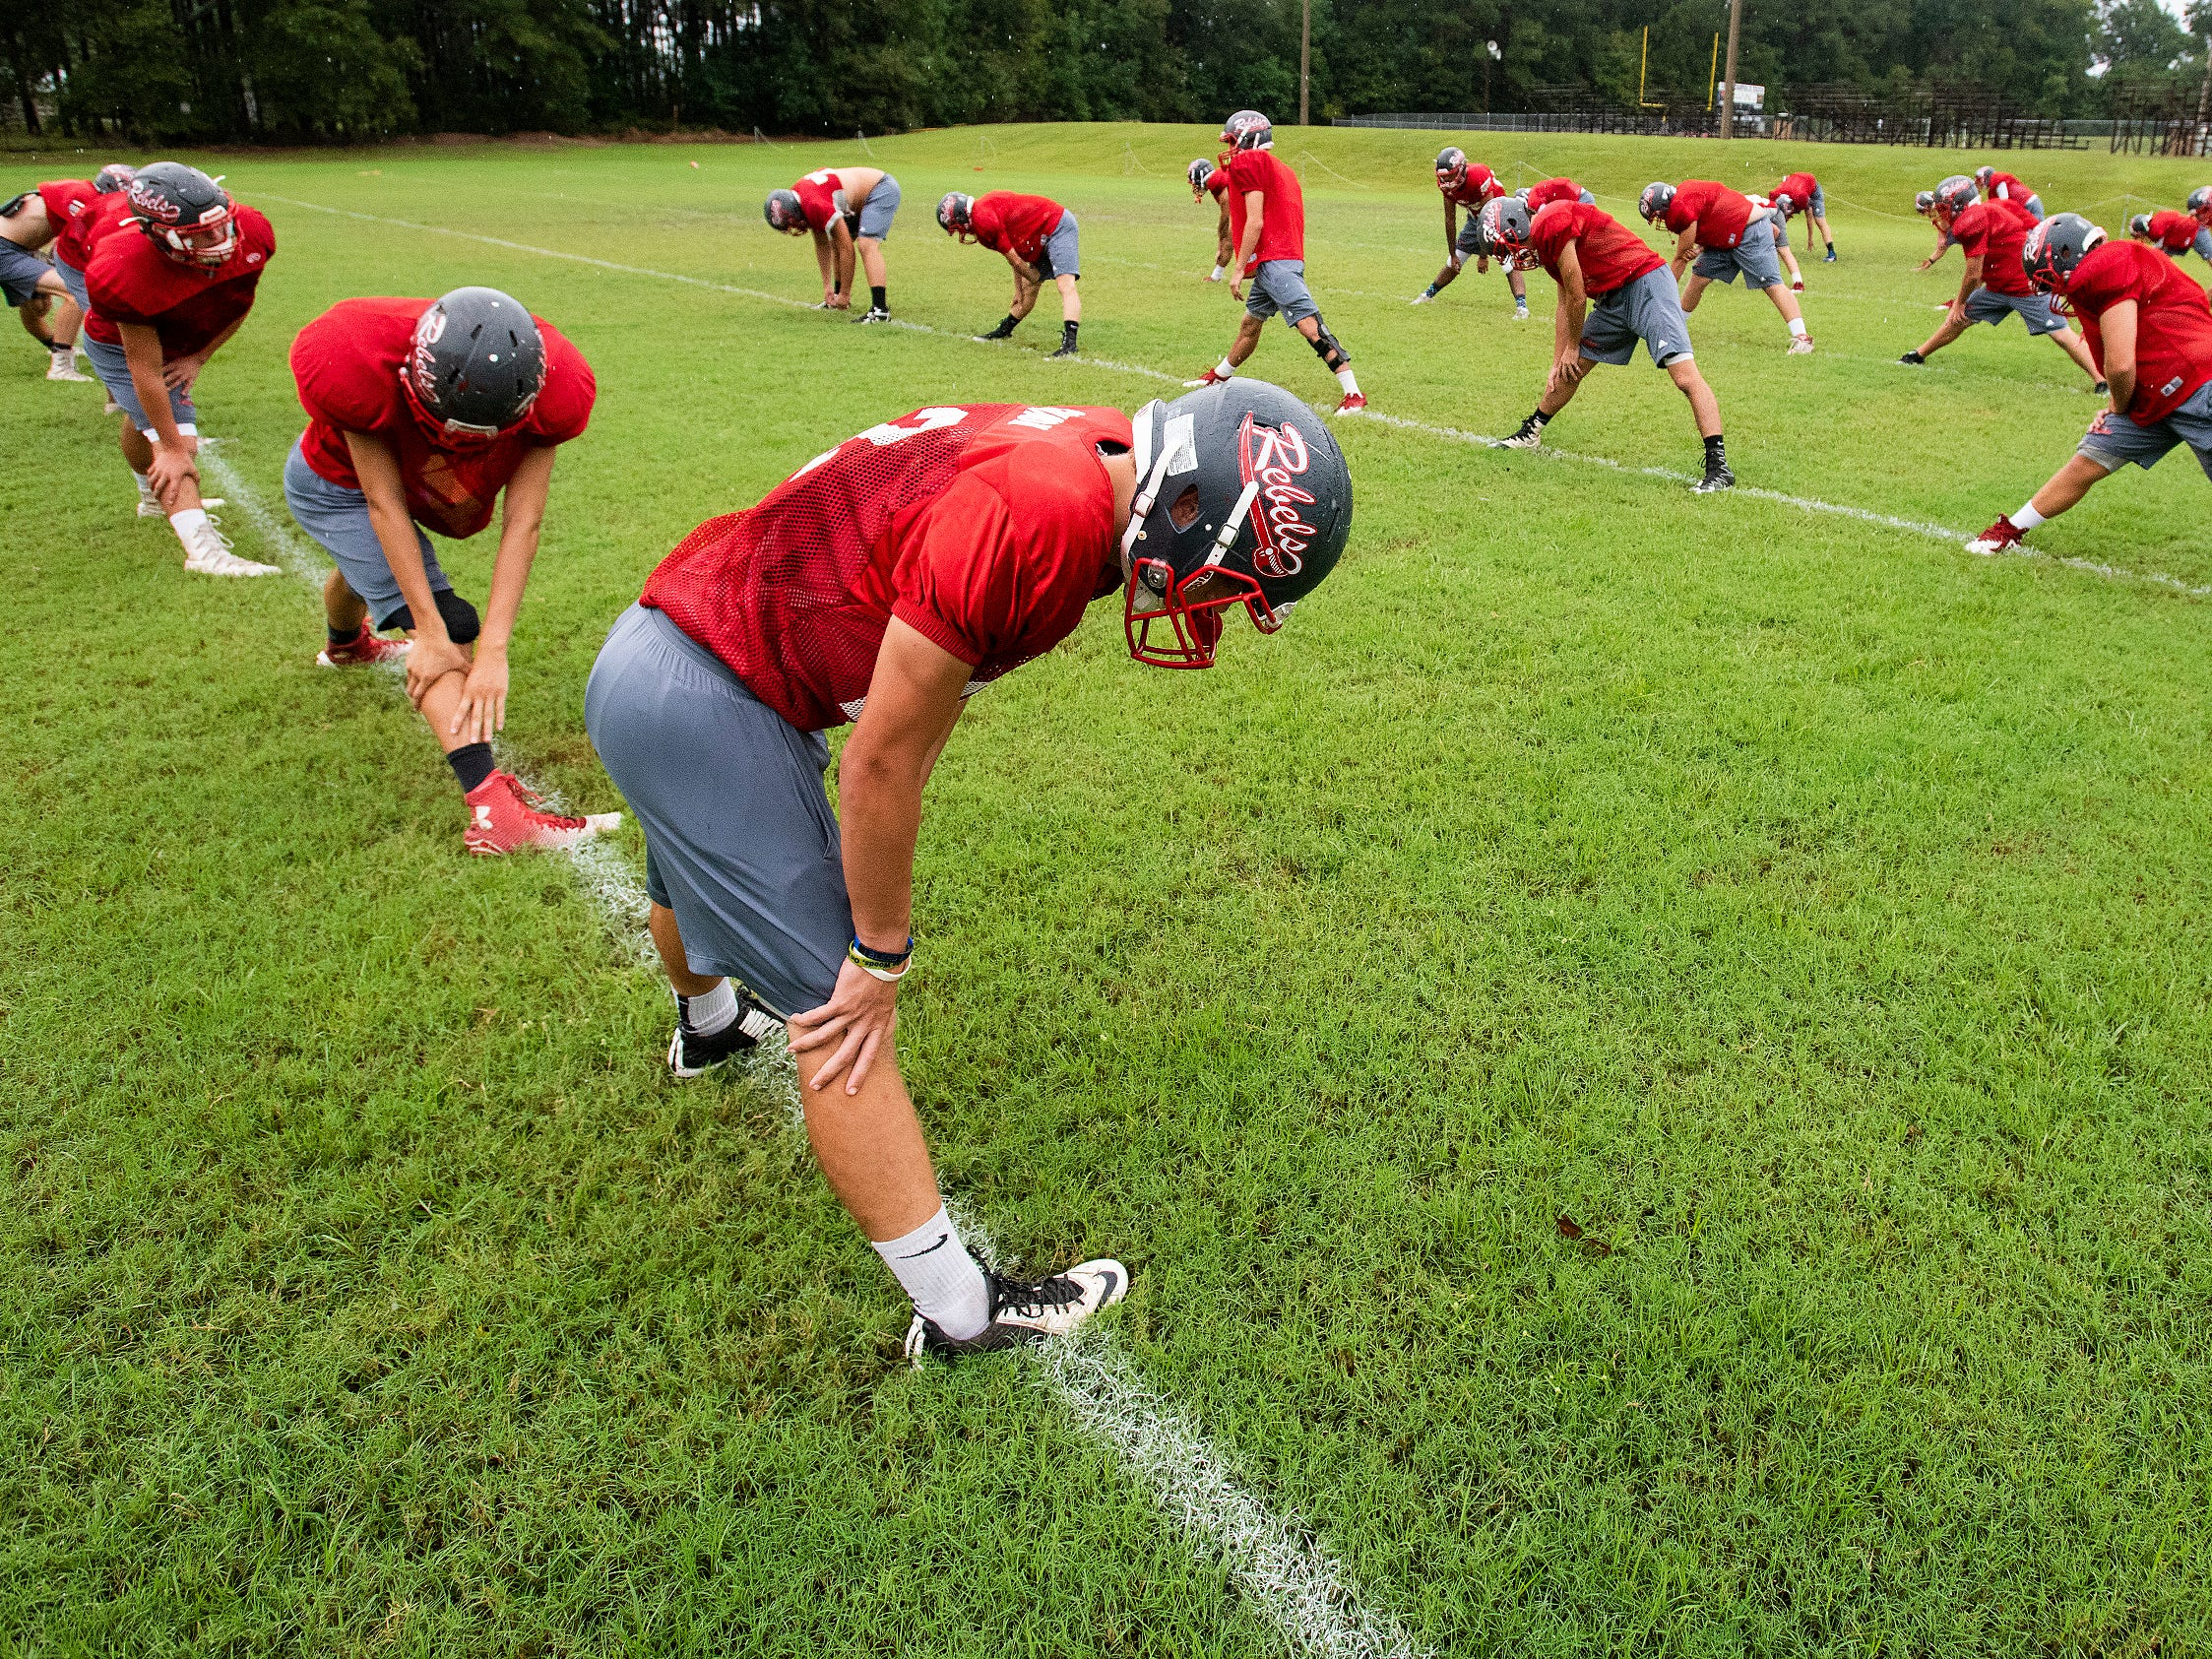 Lowndes Academy players stretch before practice in Hayneville, Ala., on Wednesday September 5, 2018.